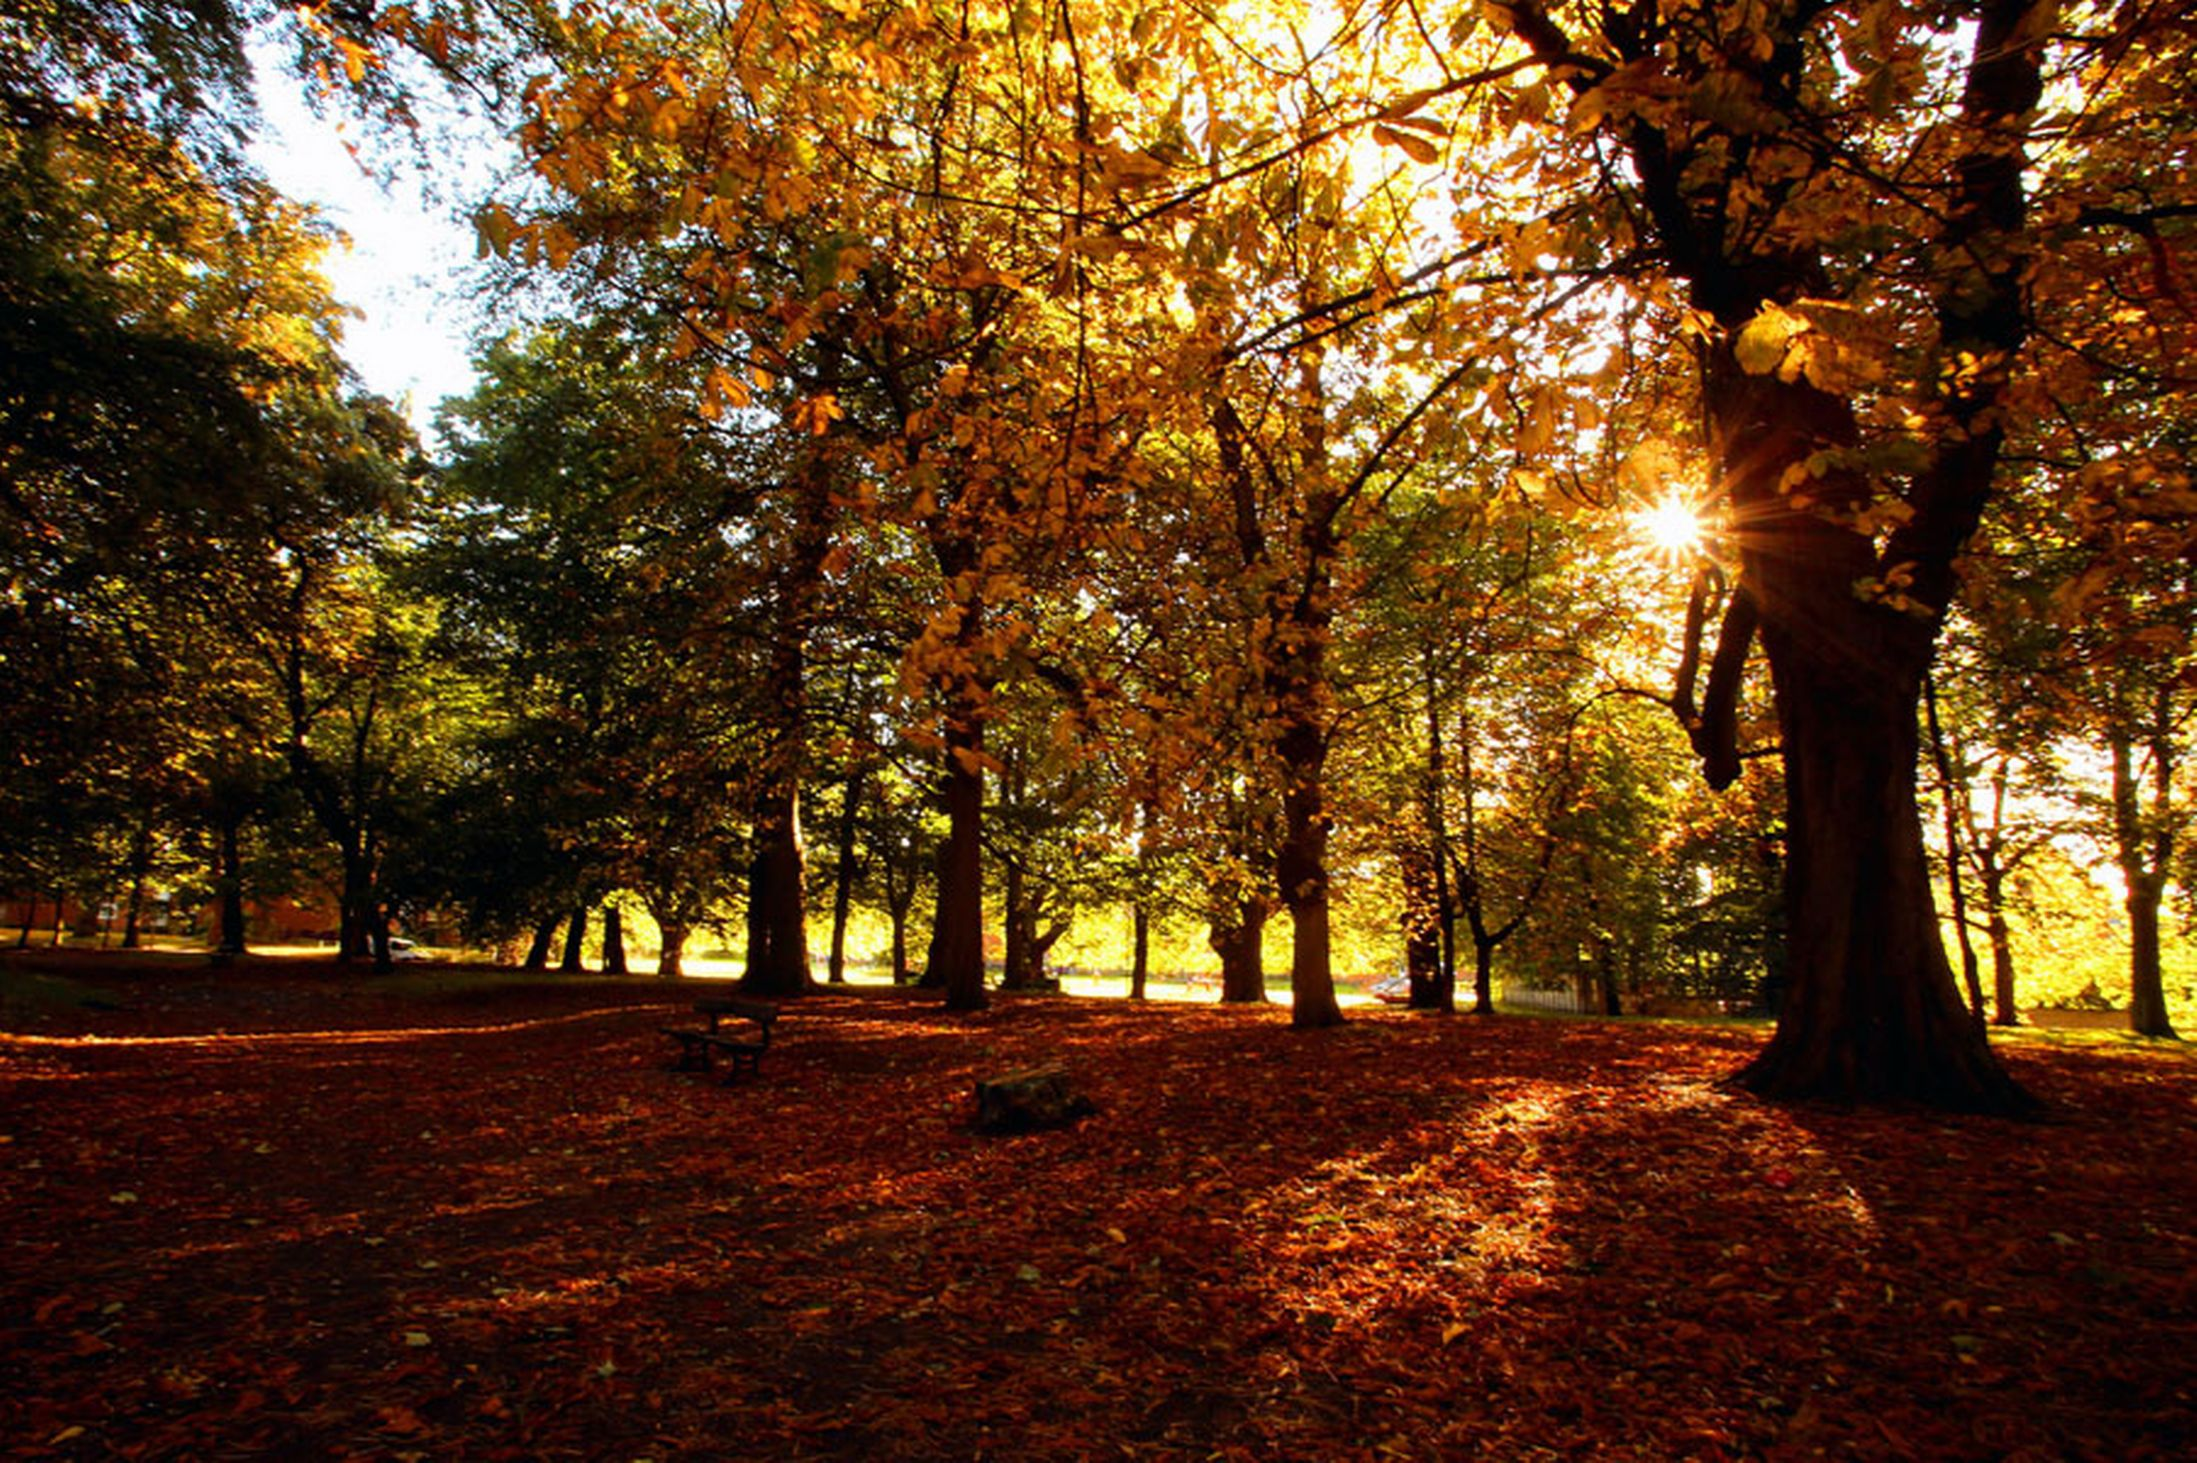 Sunshine-casts-shadows-from-the-trees-in-Sefton-Park-Liverpool-10th-October-2641157